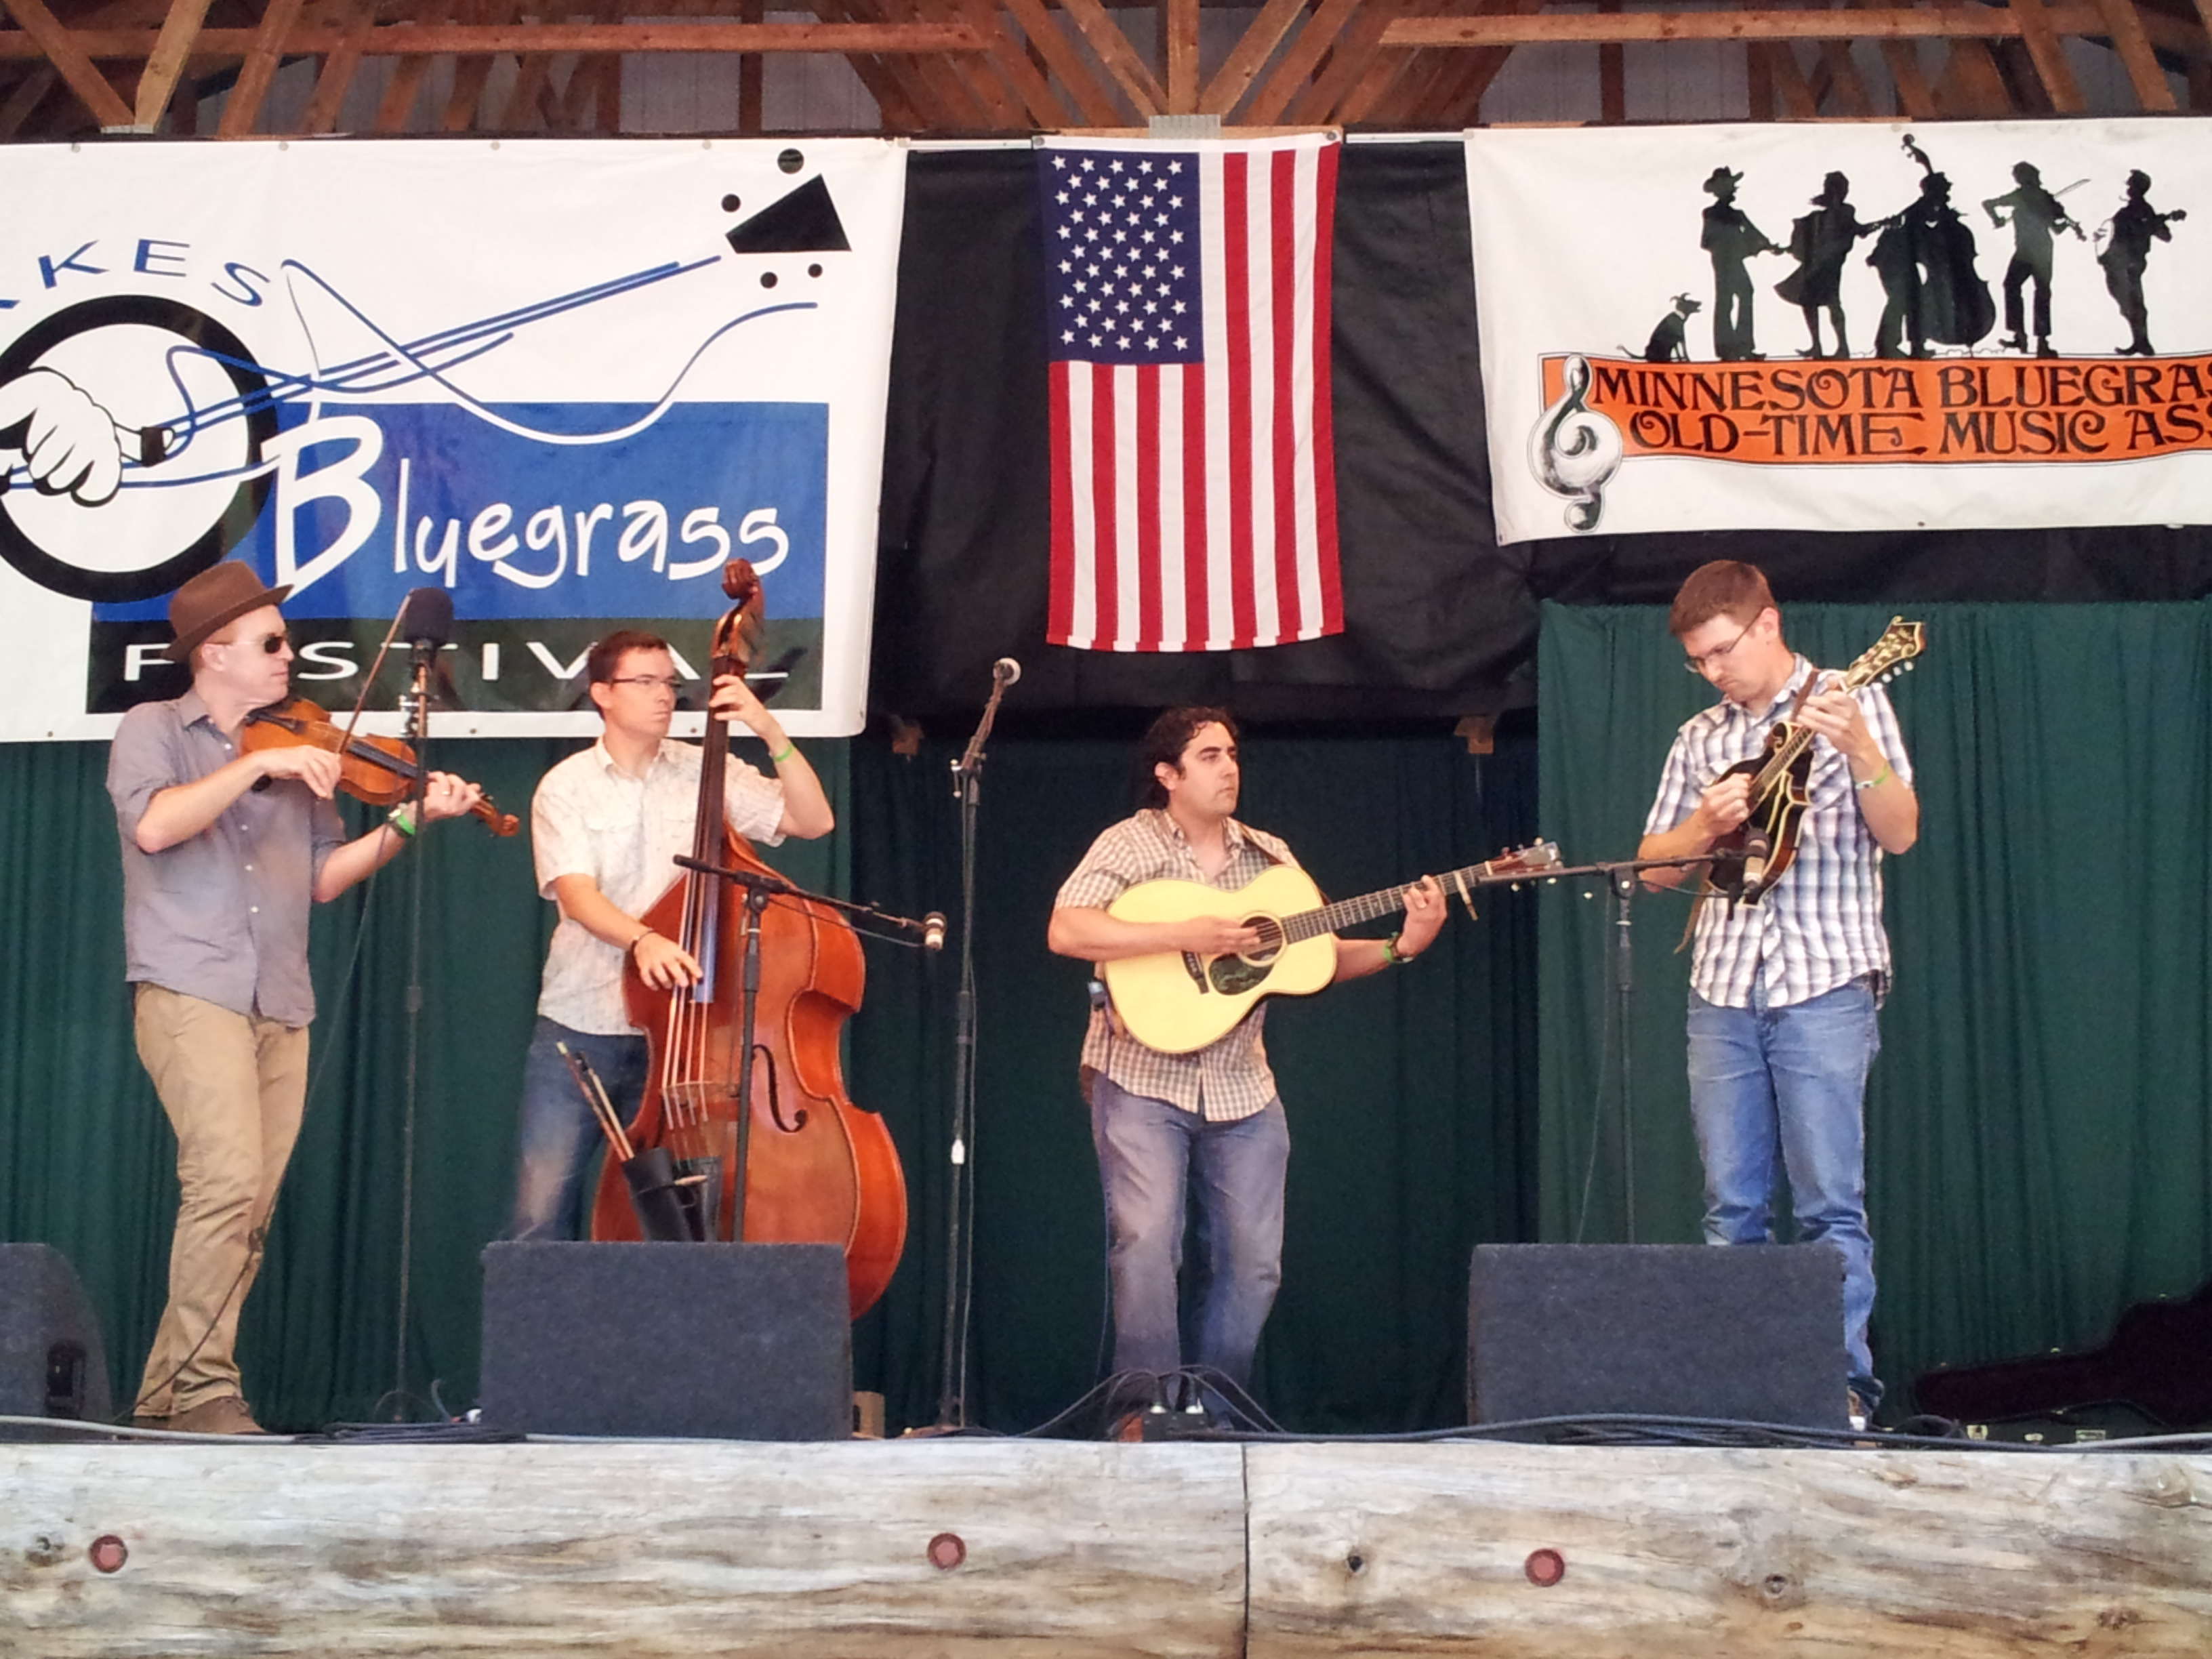 Anthony Ihrig at the Minnesota Bluegrass & Old-Time Music Festival